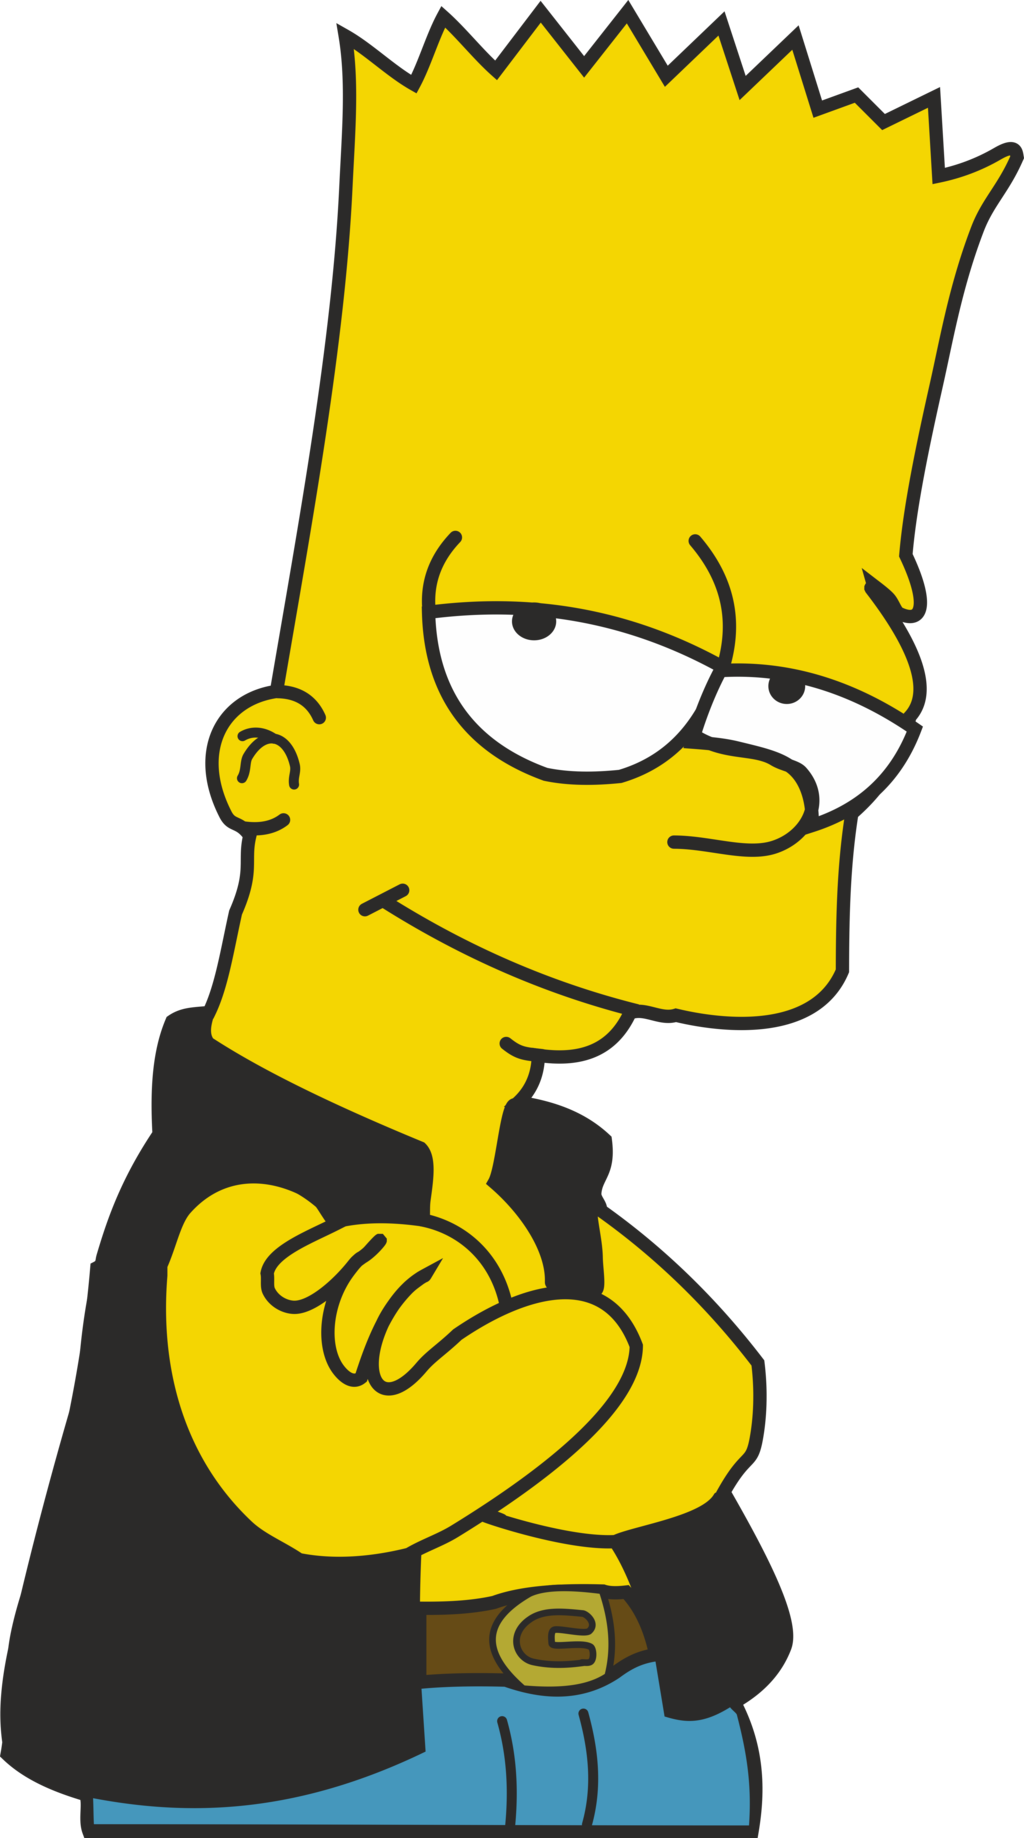 Png Bart Simpson Best Collections Image image #39257